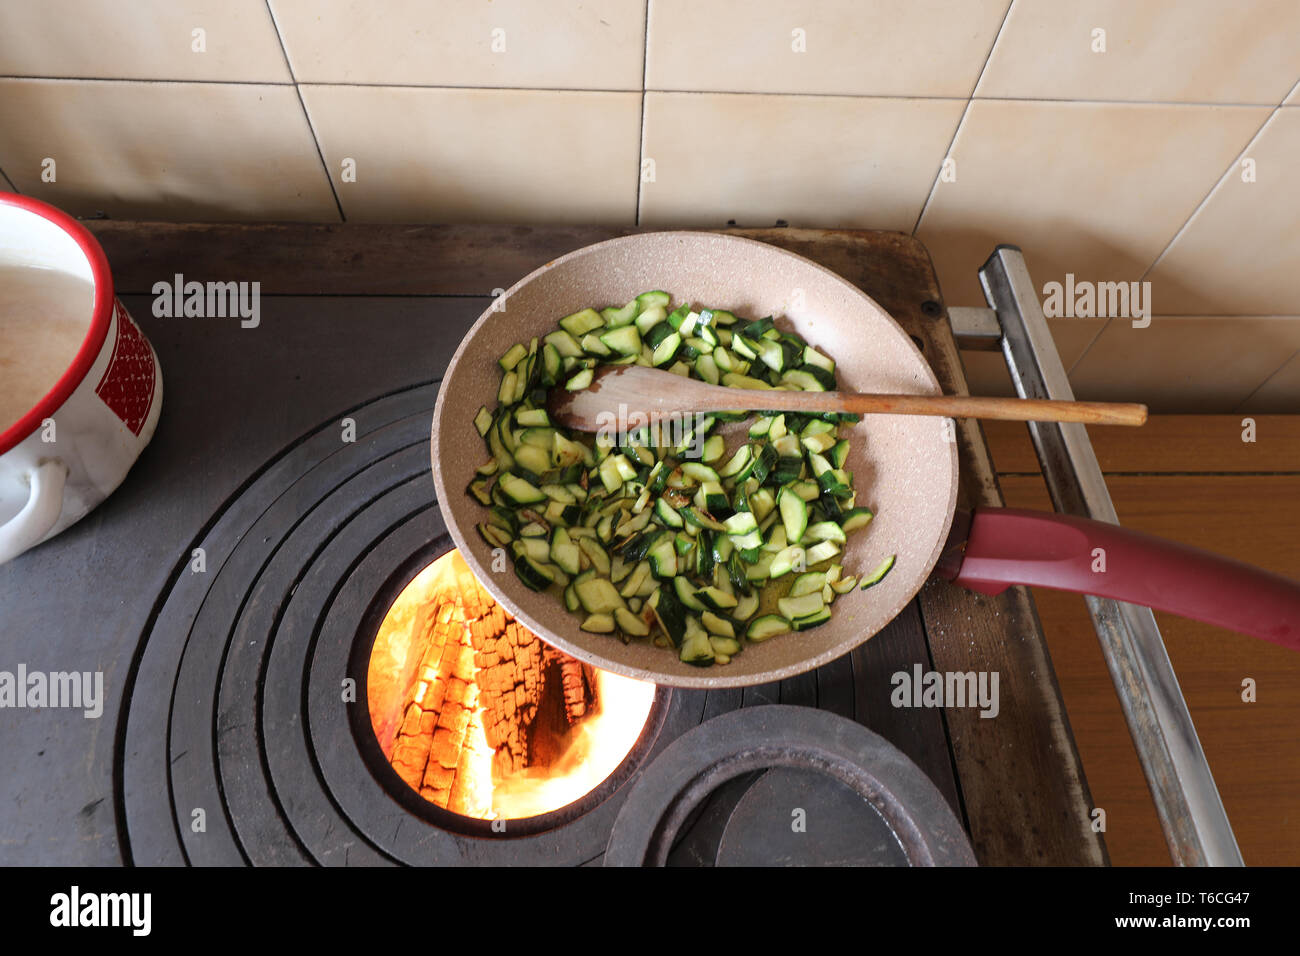 zucchini cooked in a pan on a wood stove in a mountain home - Stock Image